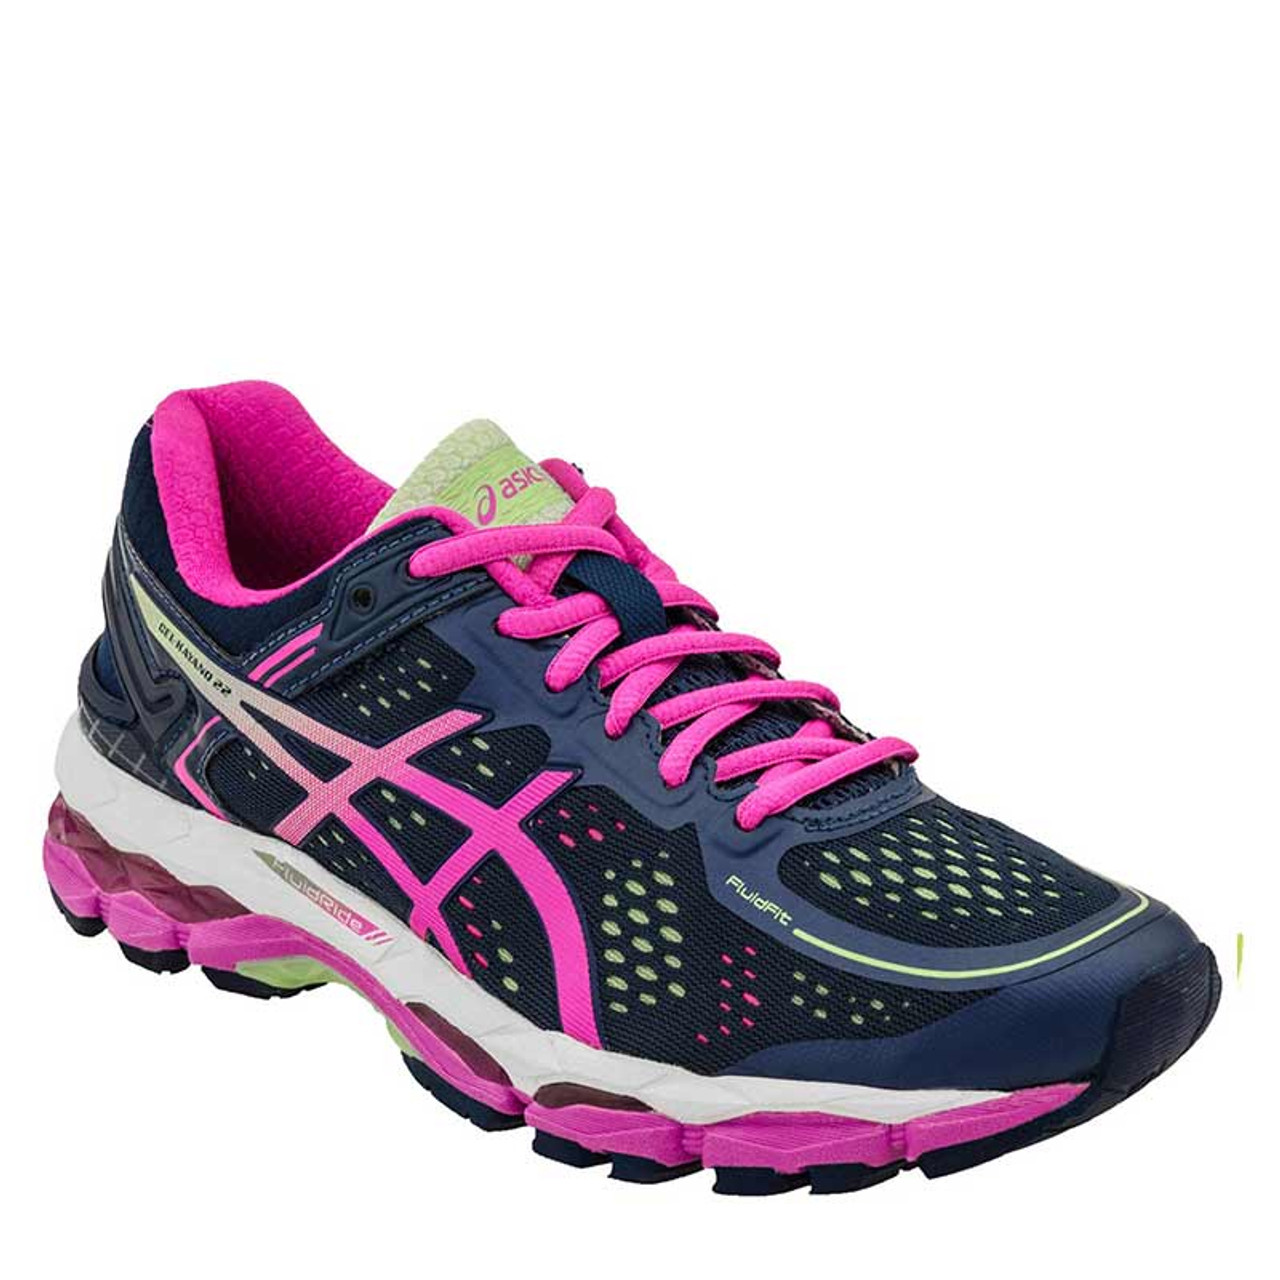 1eae4b55f7bc ASICS T597N.4935 Women s GEL KAYANO 22 Running Shoes - Family ...